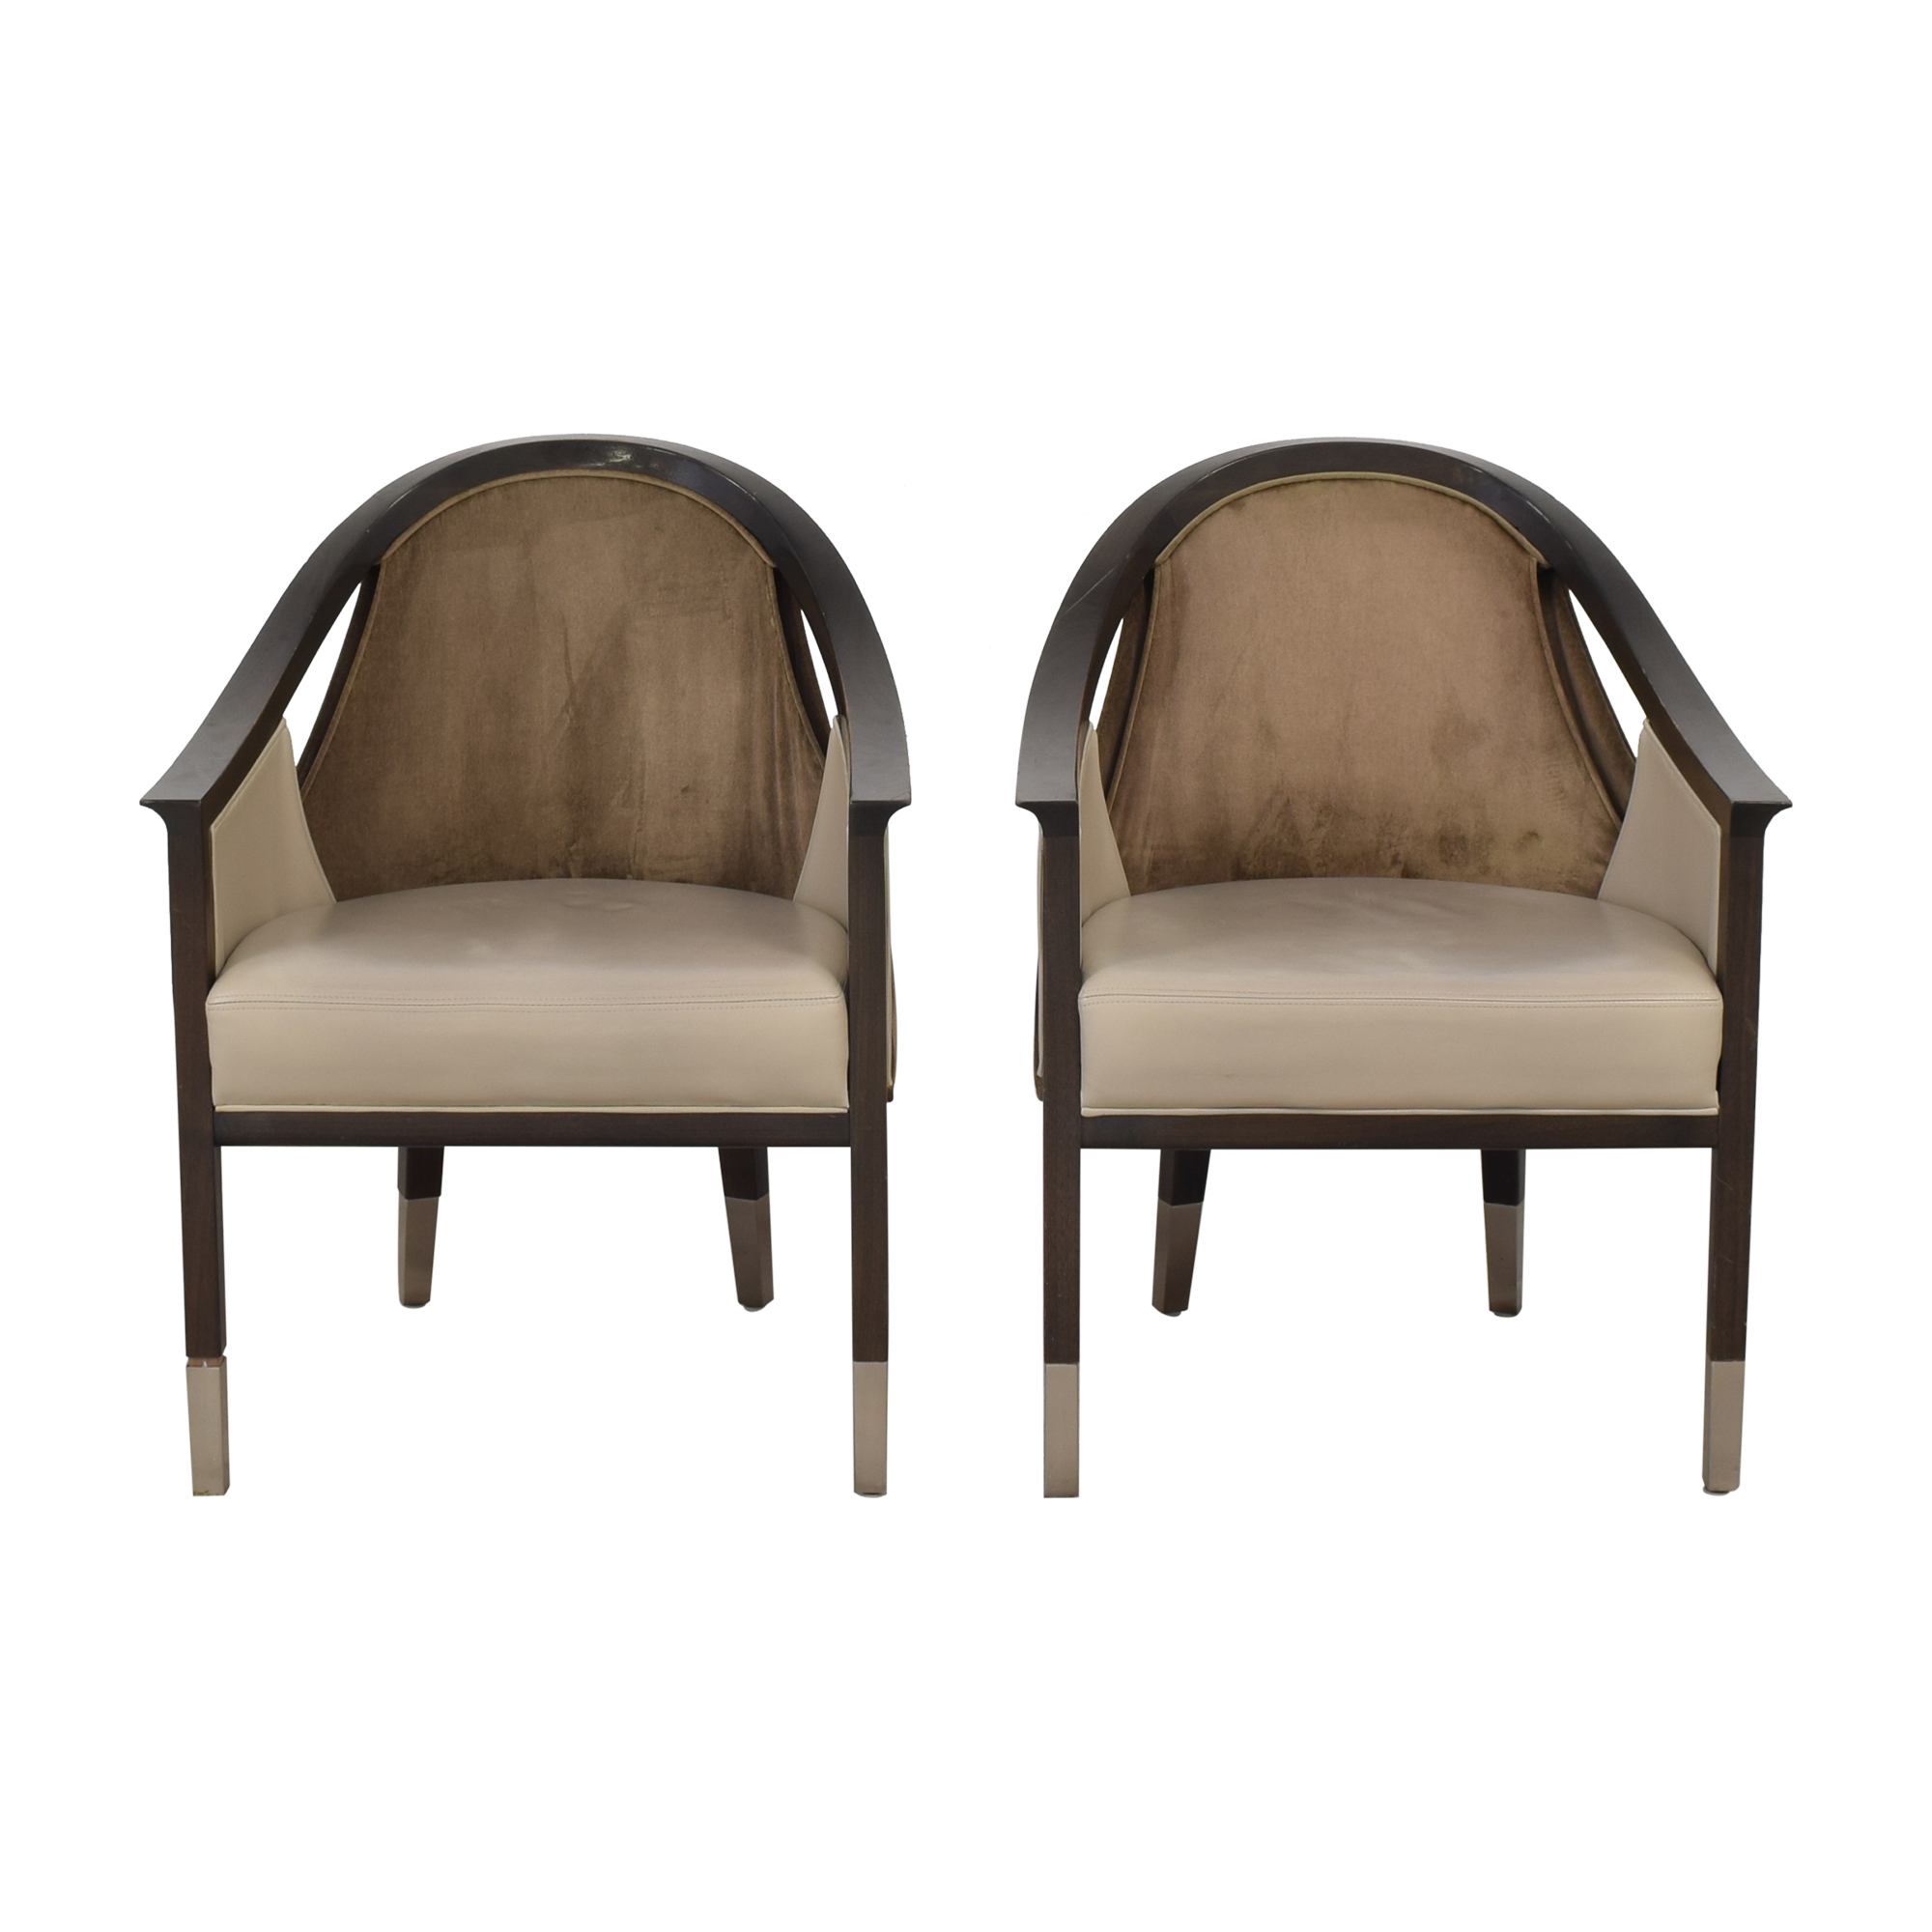 buy Allied Works Eleven Madison Park Dining Room Chairs Allied Form Works Chairs